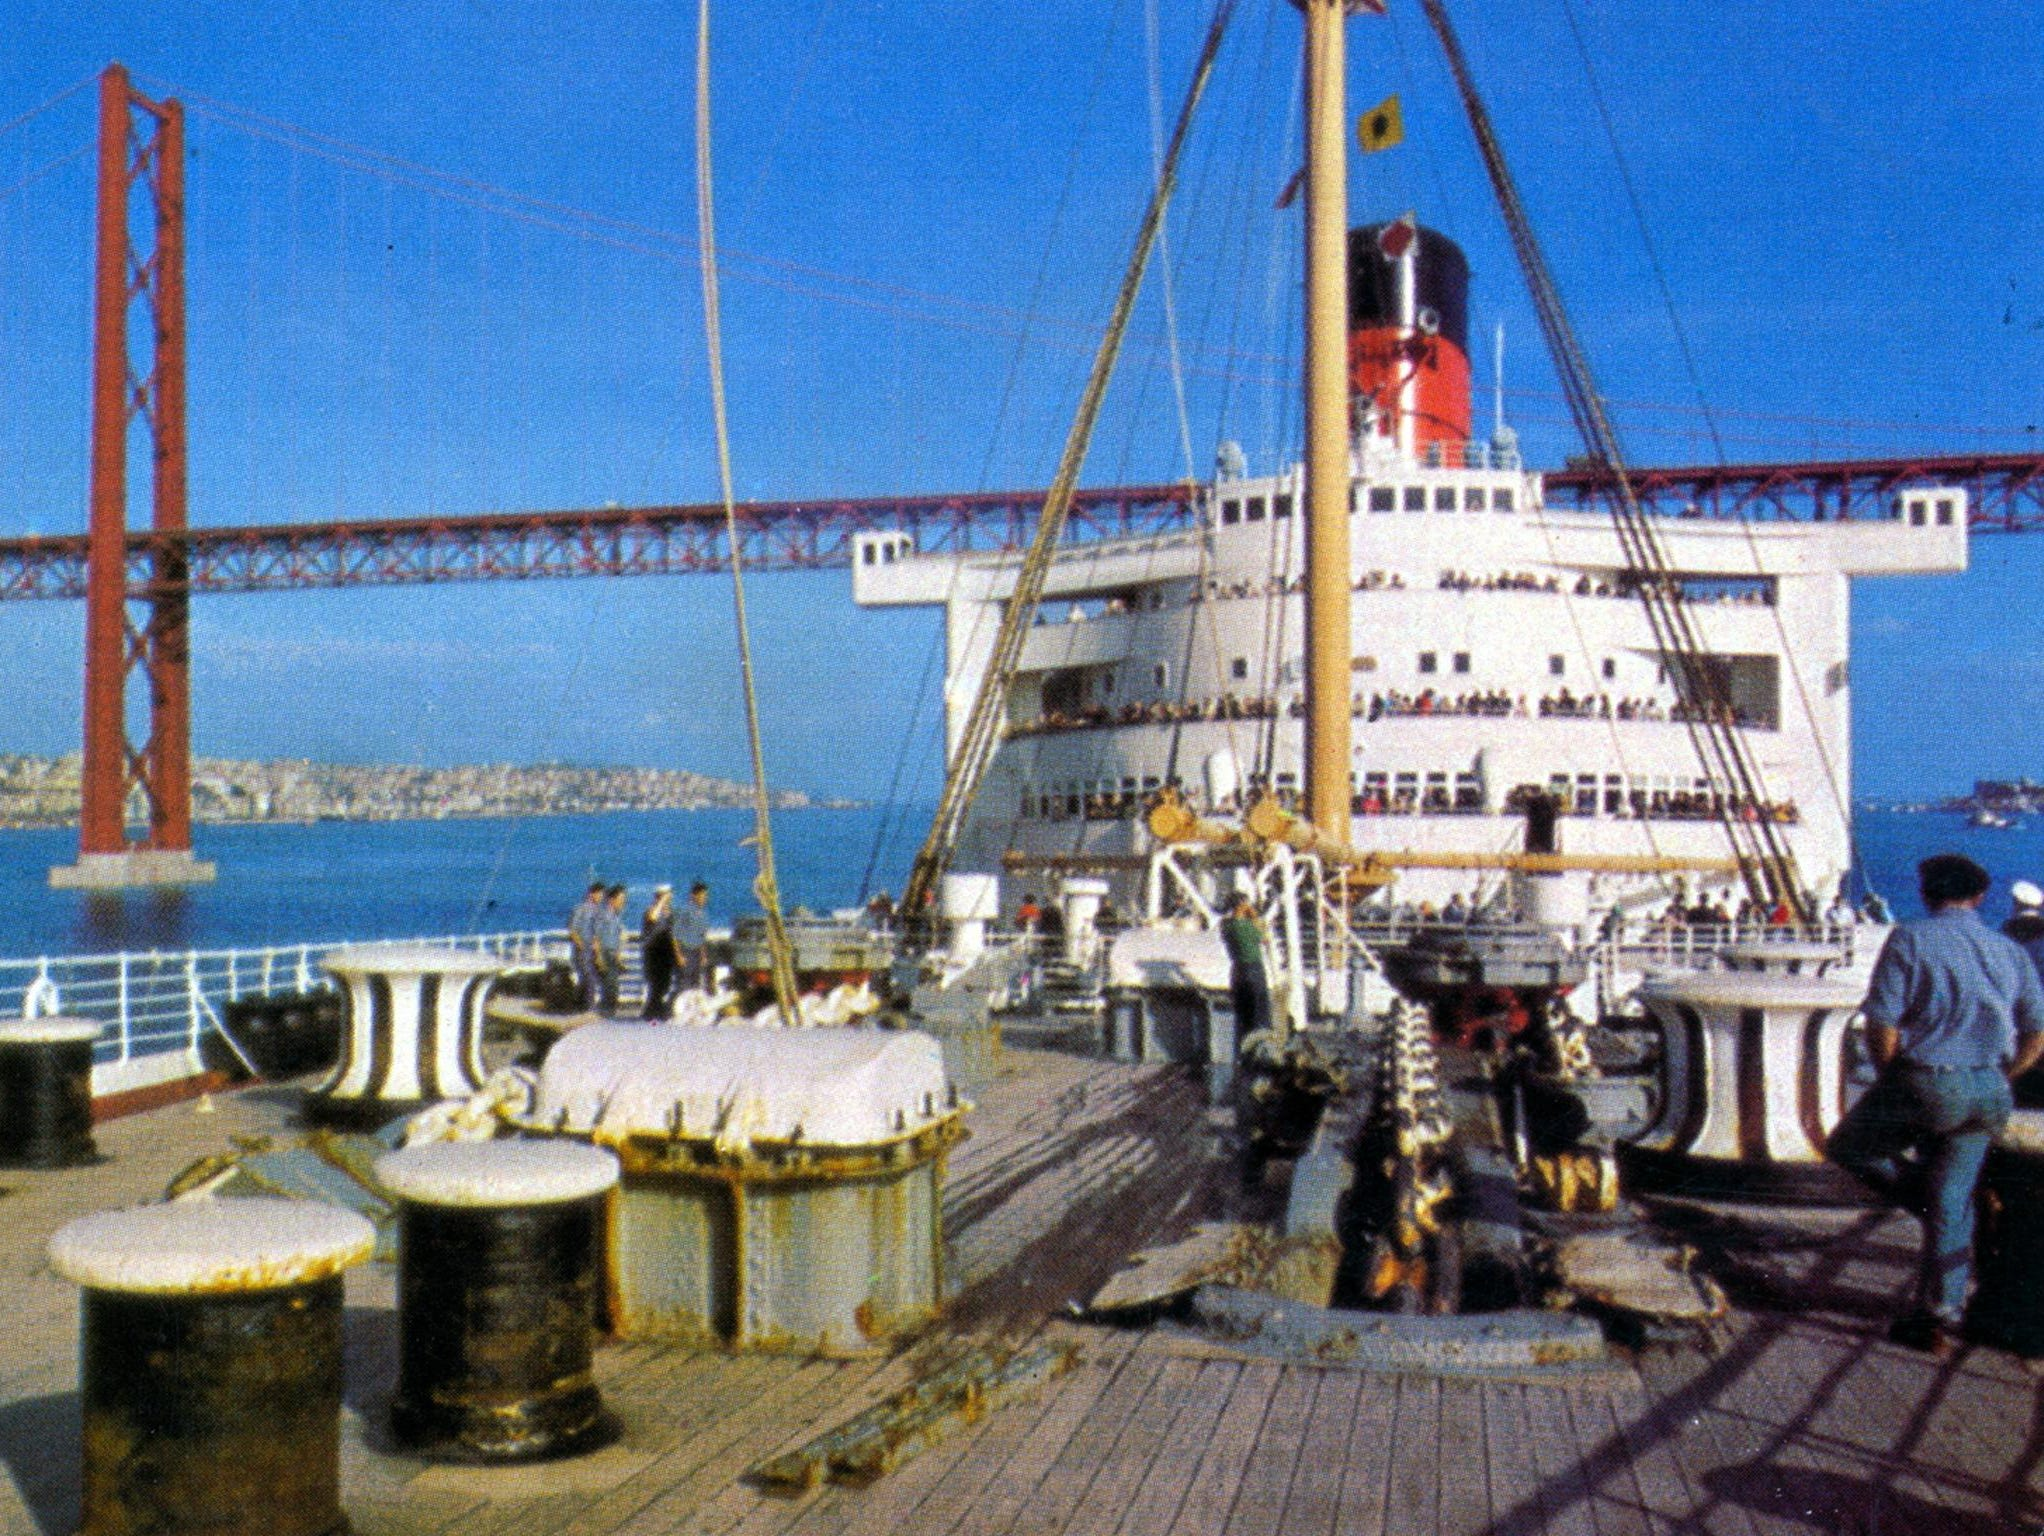 The Queen Mary's final, 1001st crossing took place in September of 1967. It was sold to the City of Long Beach for $3.5 million and departed on a 39-night delivery cruise around South America. In this unusual image, the Mary is shown sailing under Lisbon's Tagus Bridge.